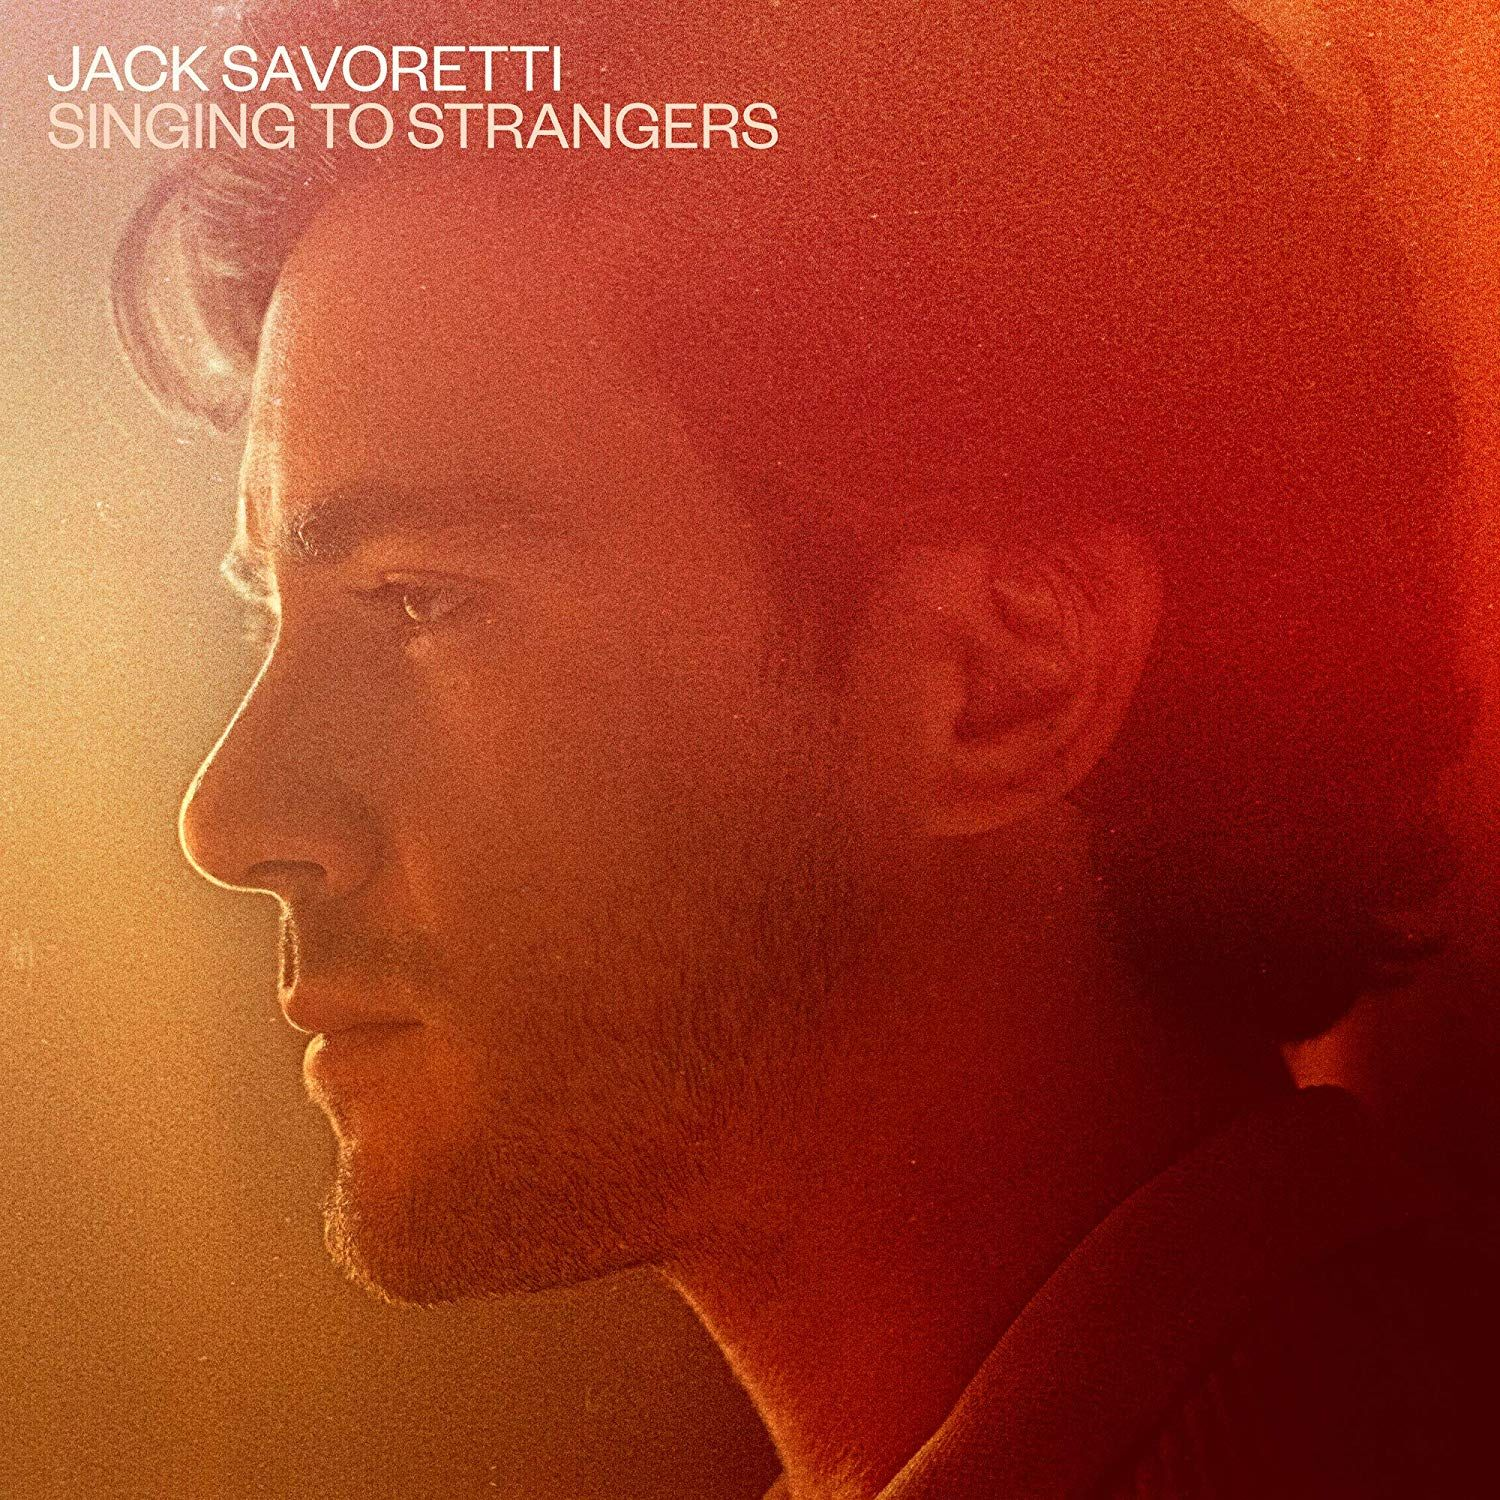 SAVORETTI JACK – Singing To Strangers